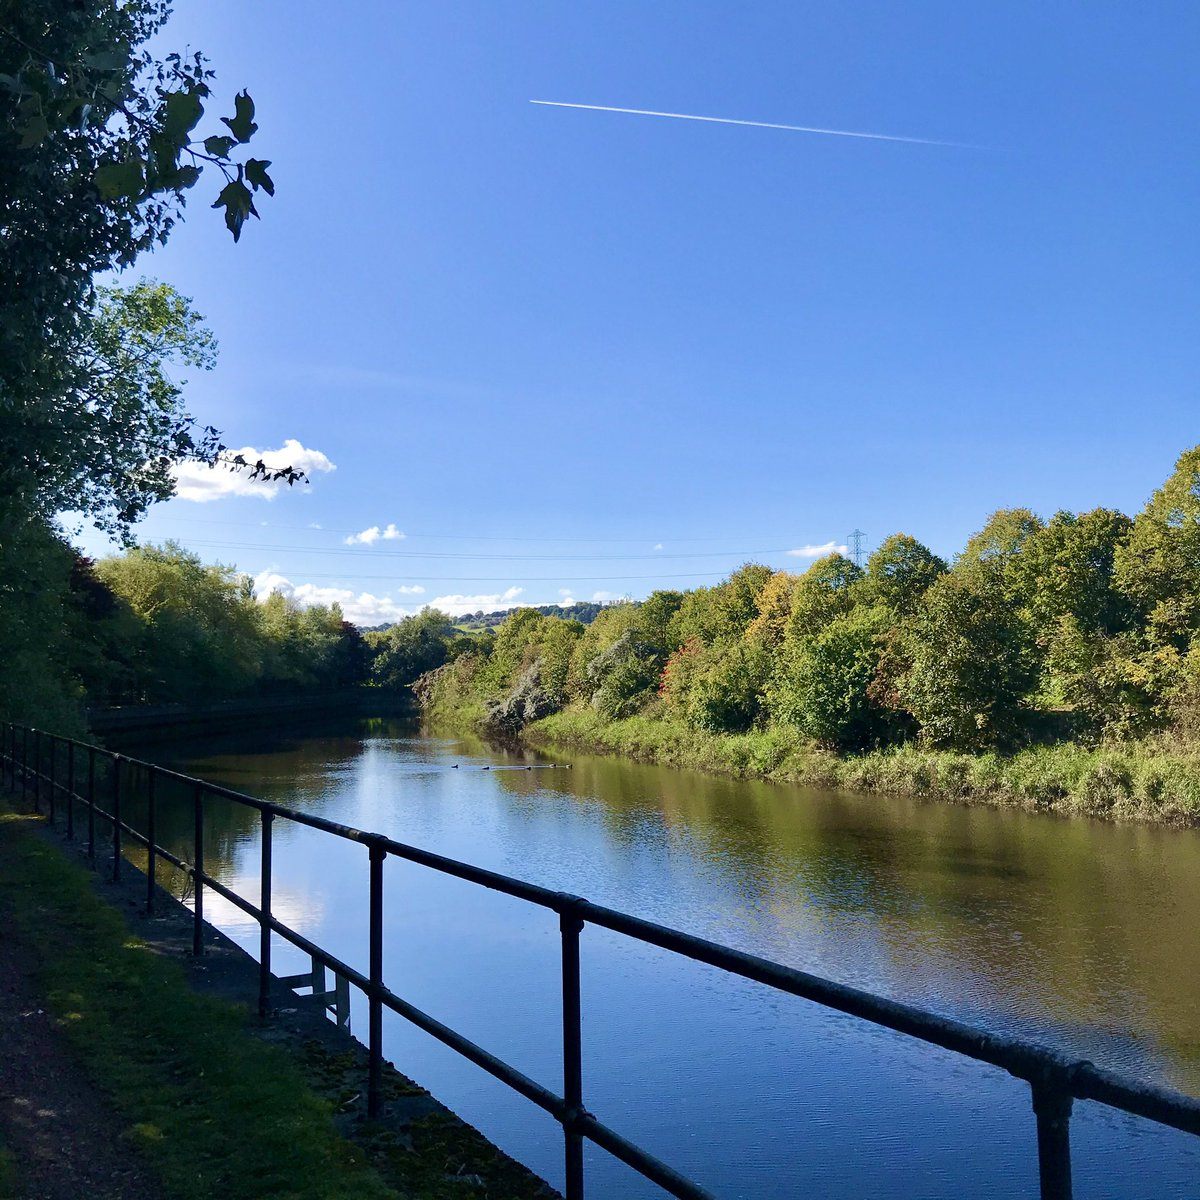 Not the most picturesque section of the #Derwent, with industrial noise and the constant thrum of the A1 and the roads around the #metrocentre, but I'm lucky to have somewhere like this to walk on a day like today. #dailywalk #autumn https://t.co/3EYG3ec2zn